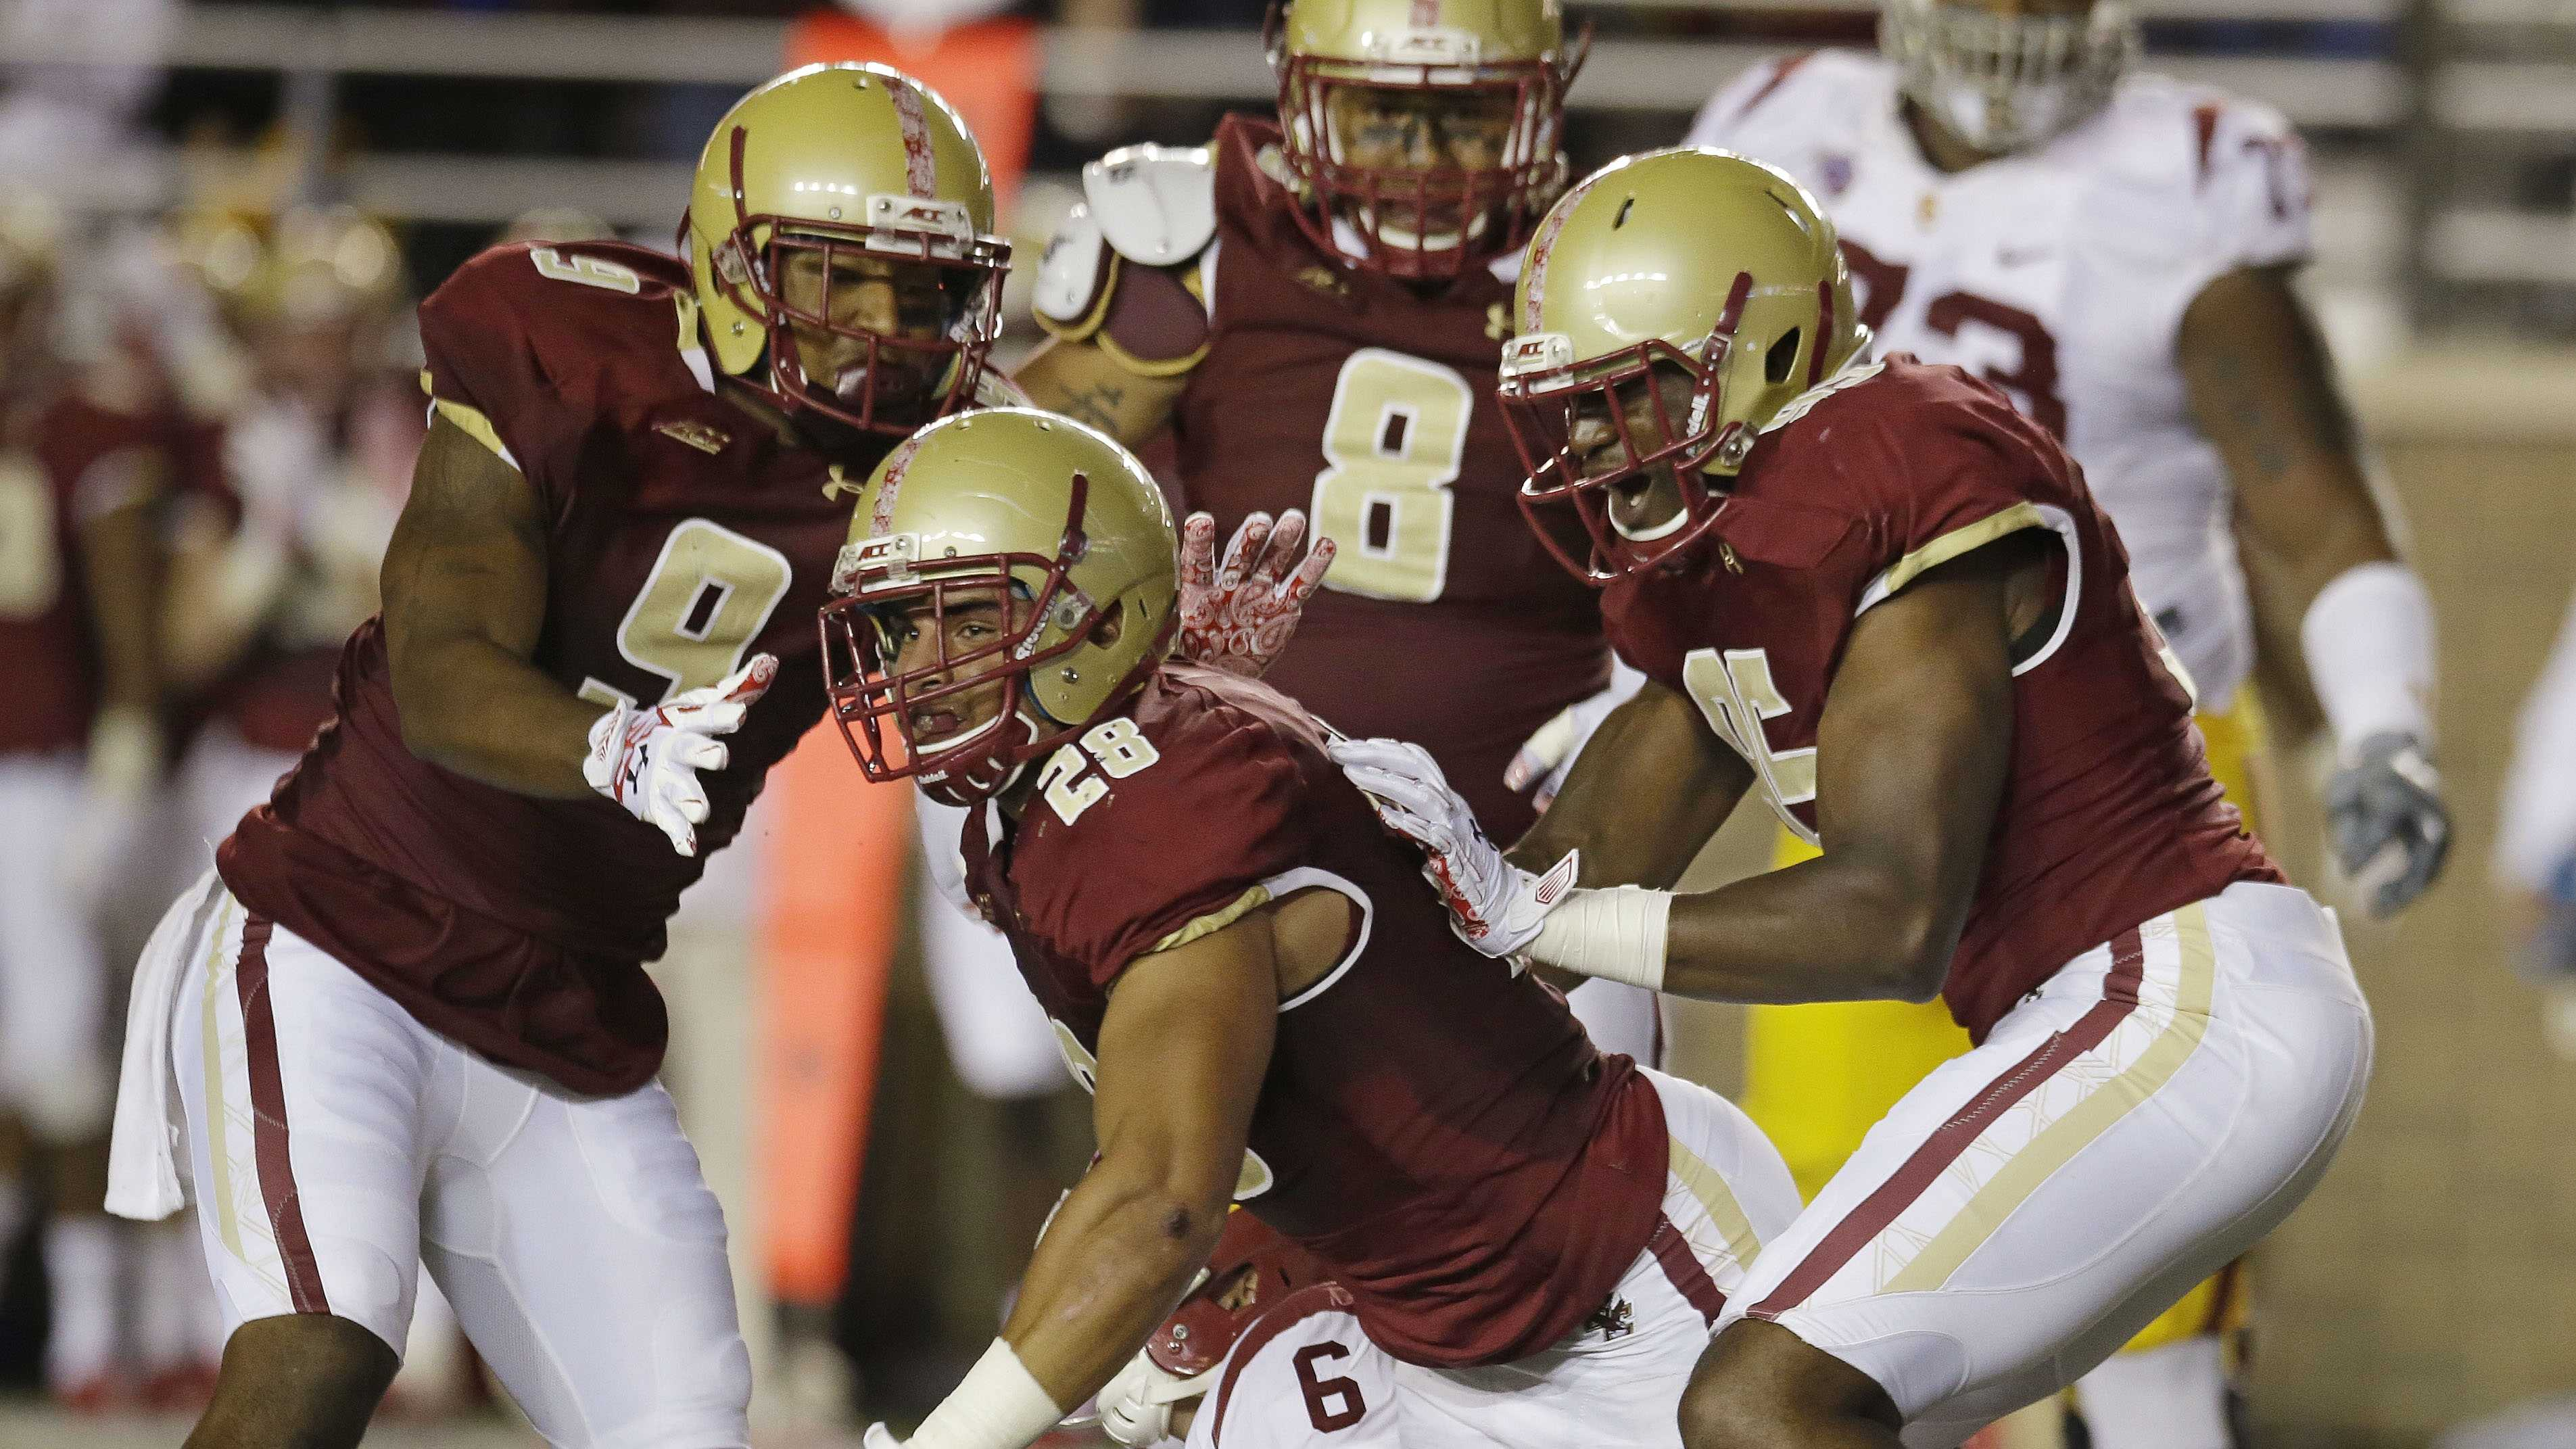 Boston College linebacker Matt Milano (28) is surrounded by celebrating teammates&#x3B; defensive back Dominique Williams (9), defensive lineman Harold Landry (8) and defensive lineman Brian Mihalik (99) after Milano sacked Southern California quarterback Cody Kessler (6) during the second half of their NCAA college football game Saturday, Sept. 13, 2014 in Boston. Boston College defeated USC 37-31.